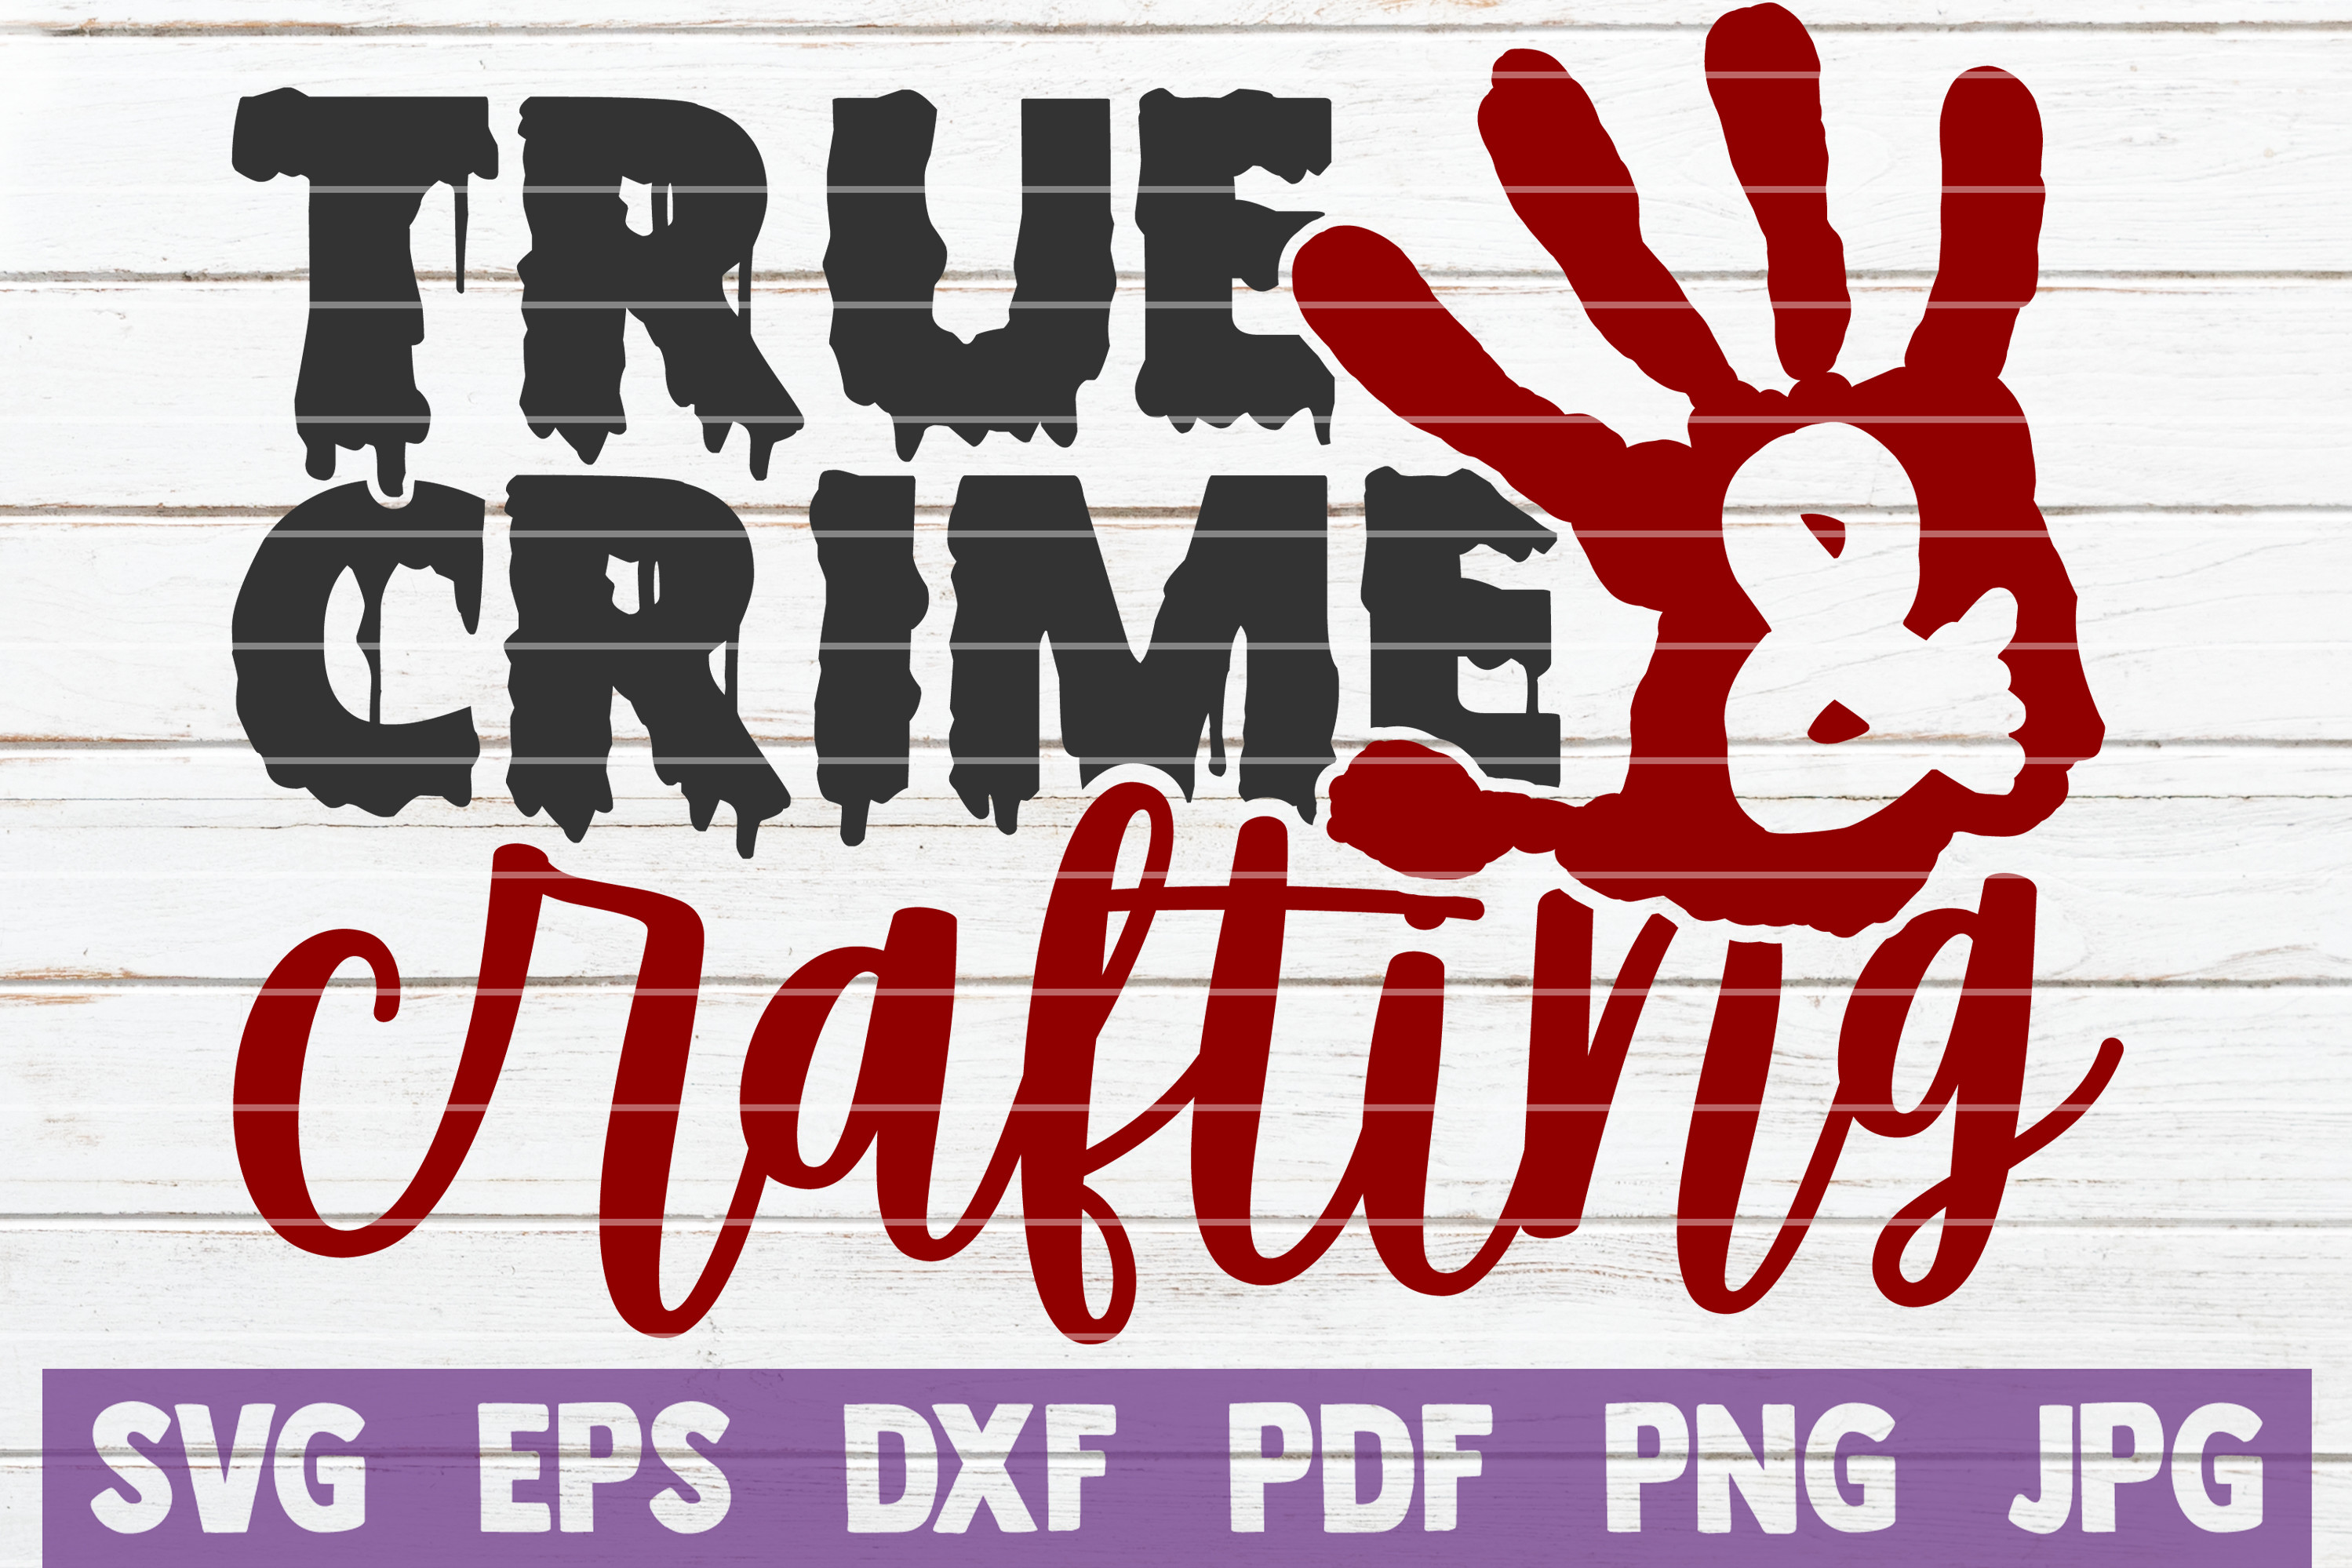 True Crime and Crafting SVG File